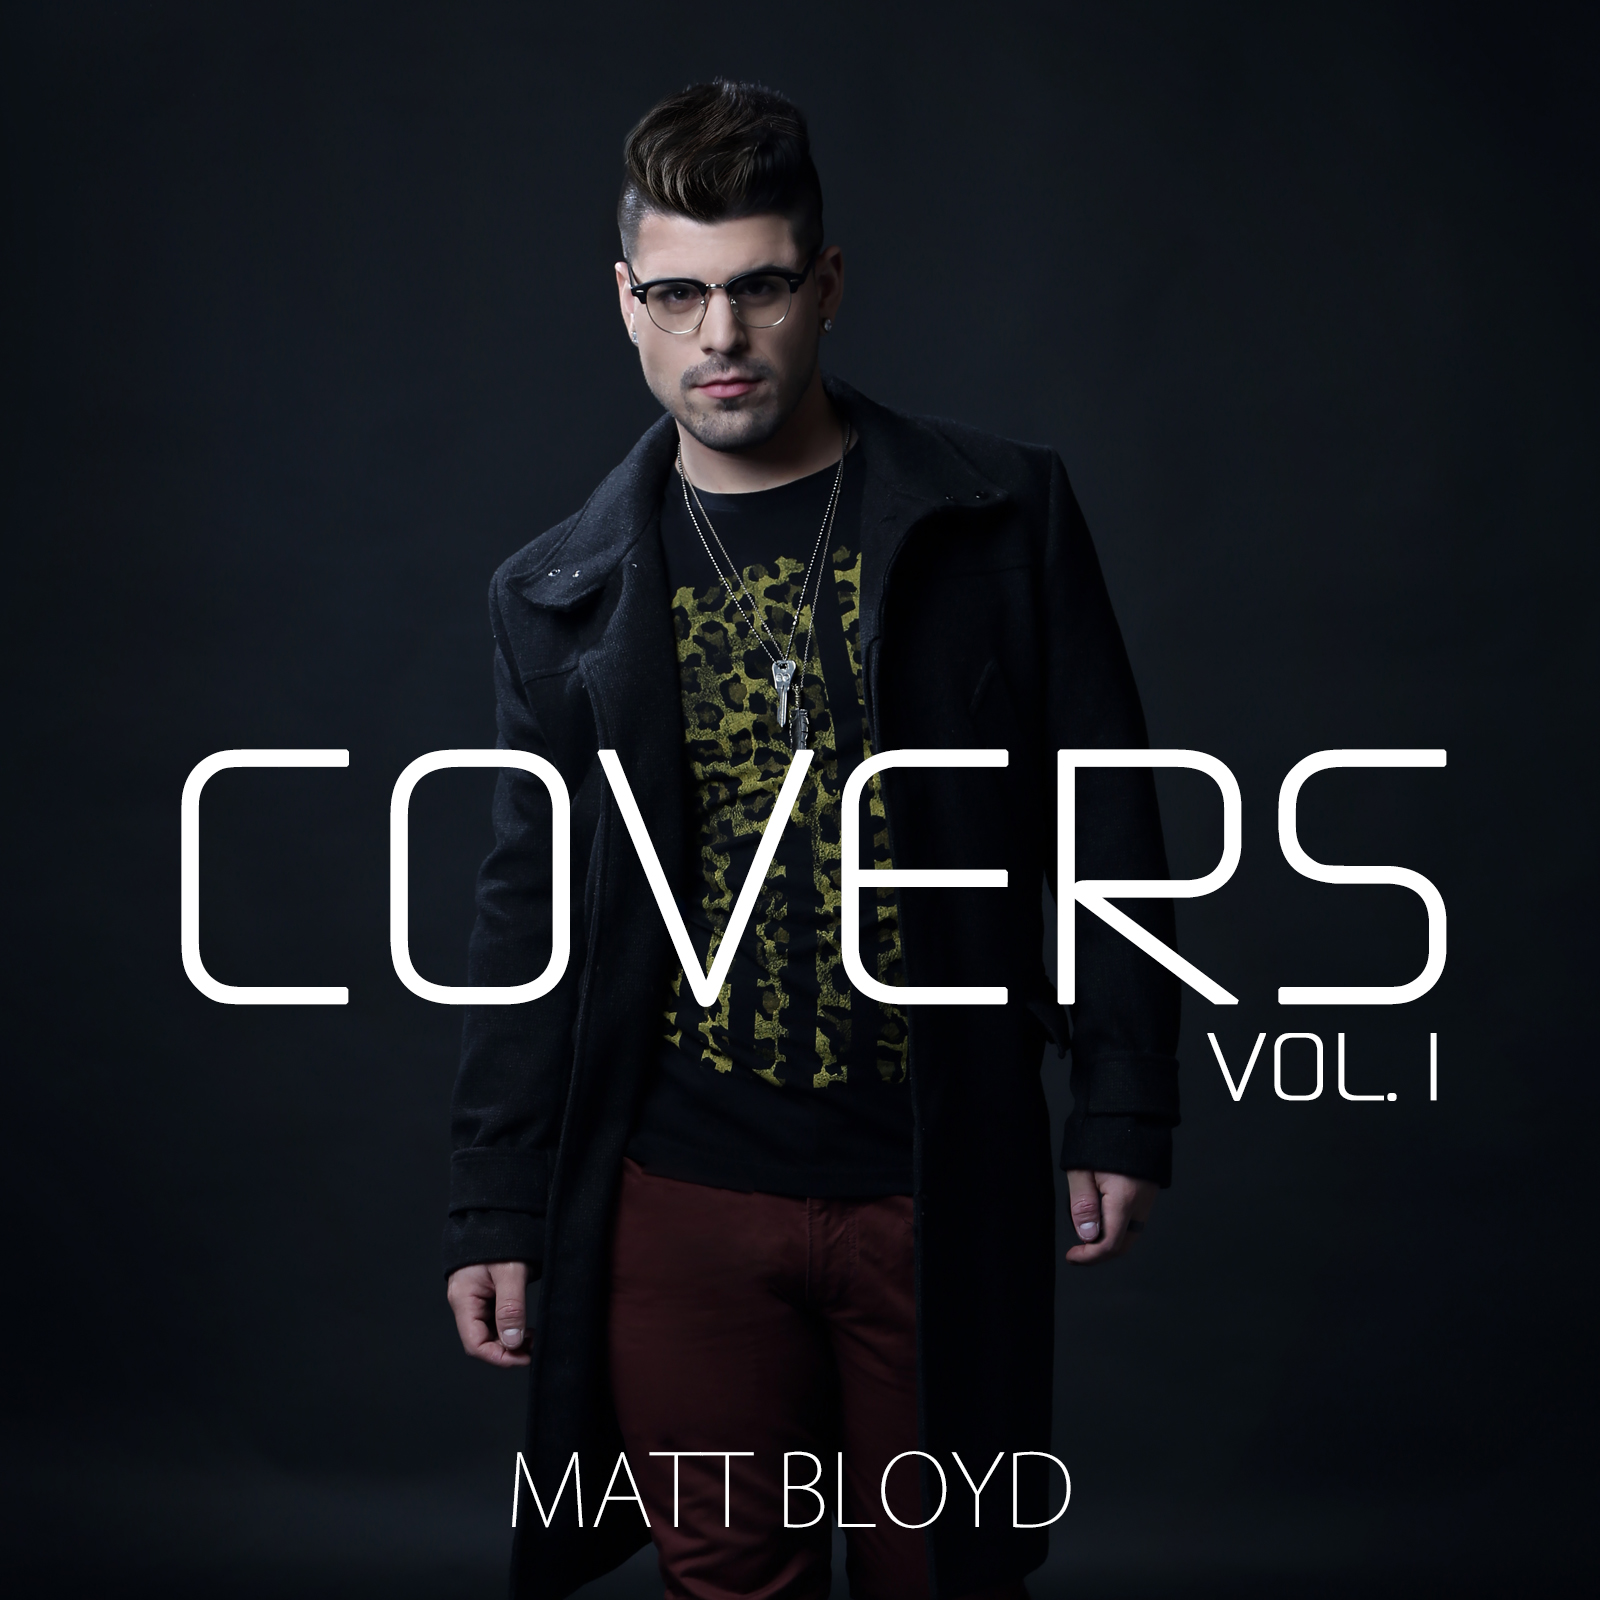 Covers Vol. 1 - Matt Bloyd